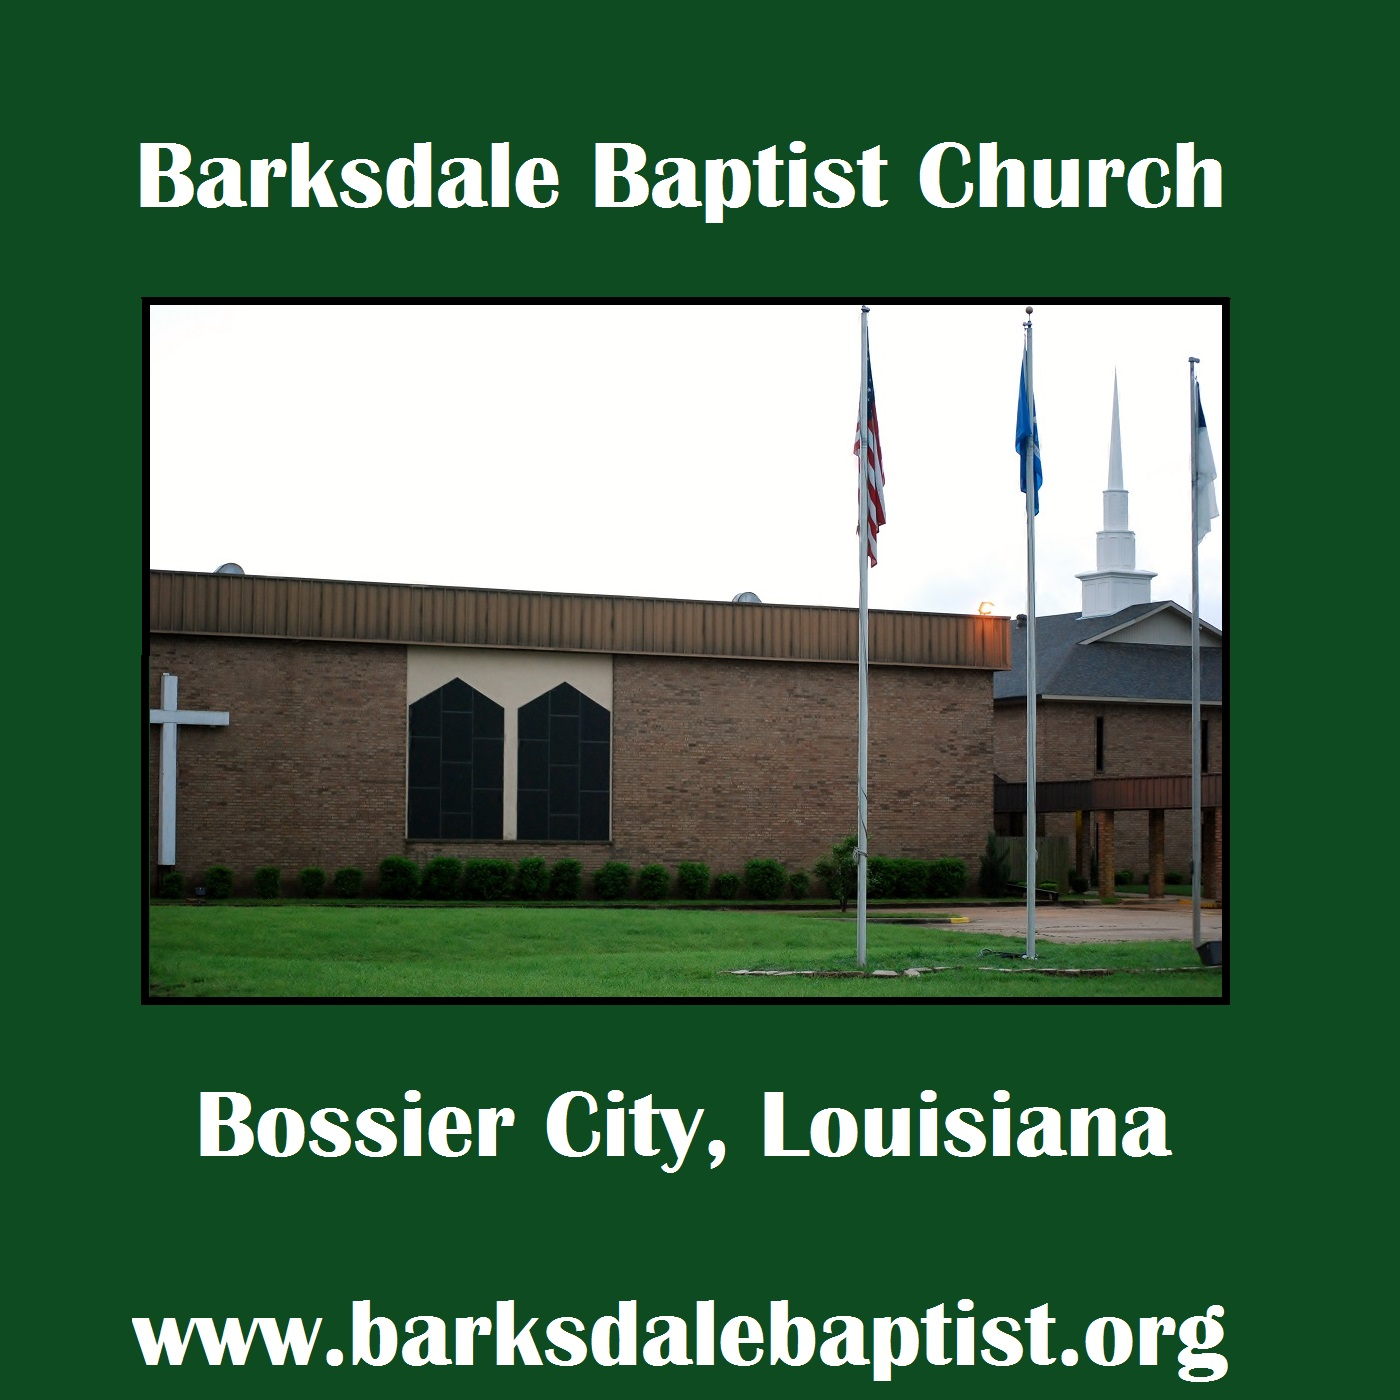 Barksdale Baptist Church